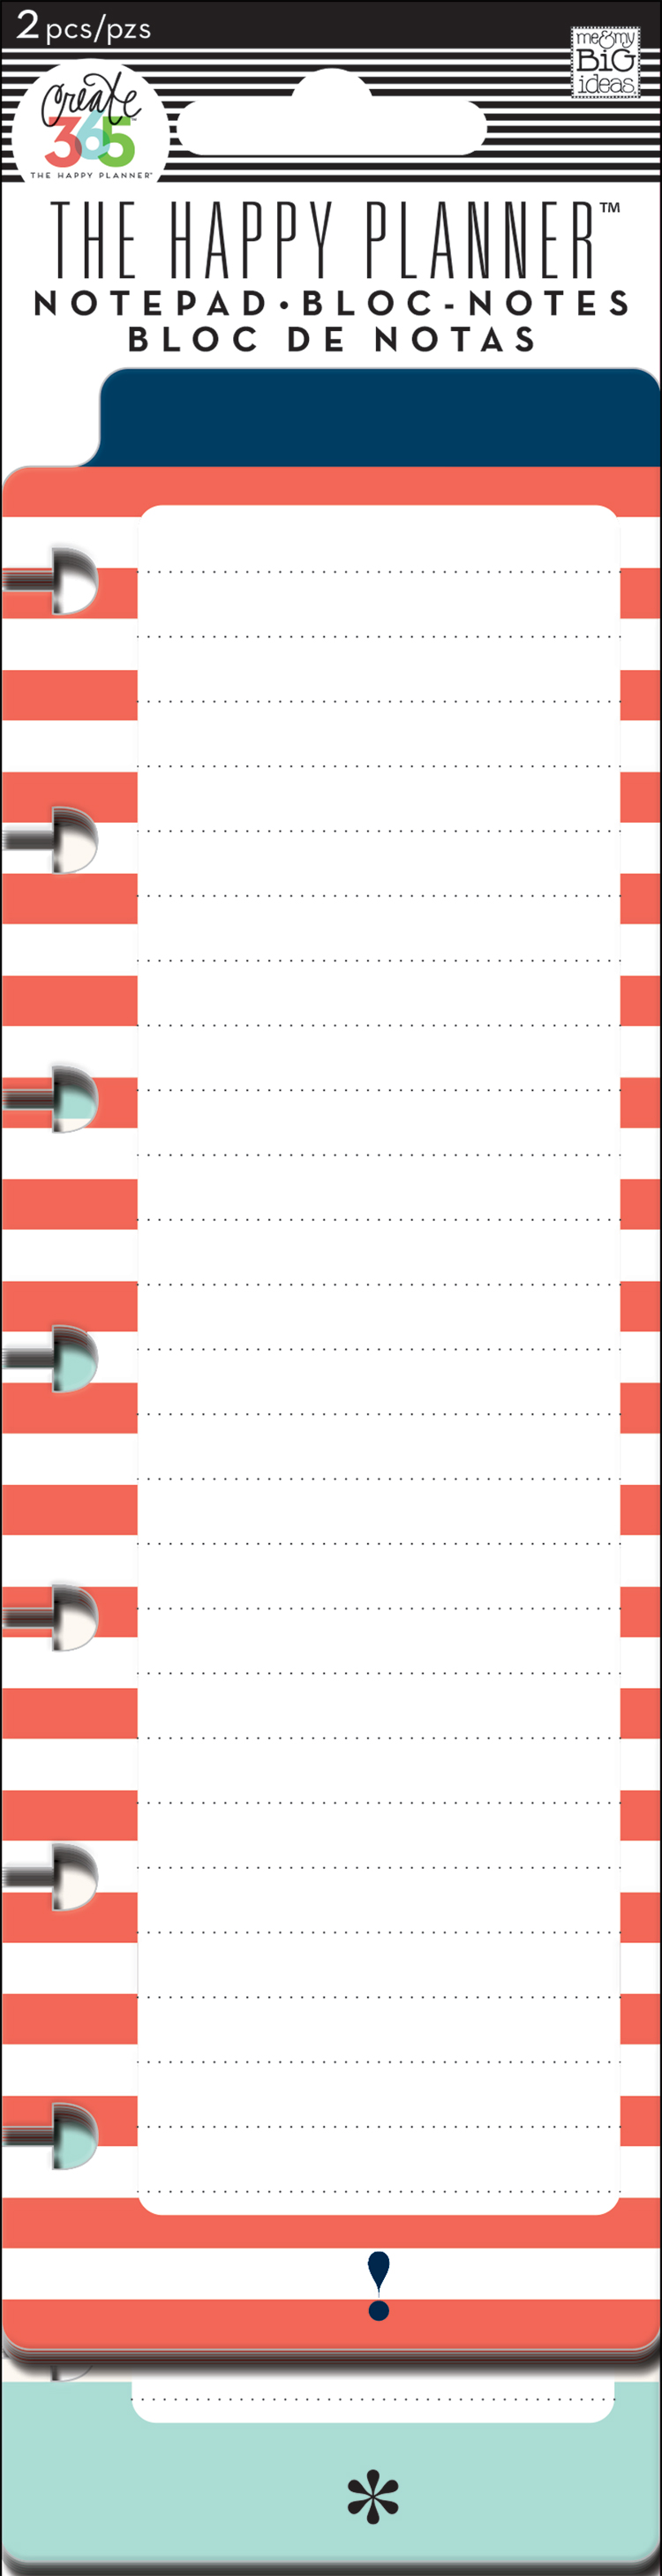 'Red & Teal' notepads for The Happy Planner™ | me & my BIG ideas.jpg